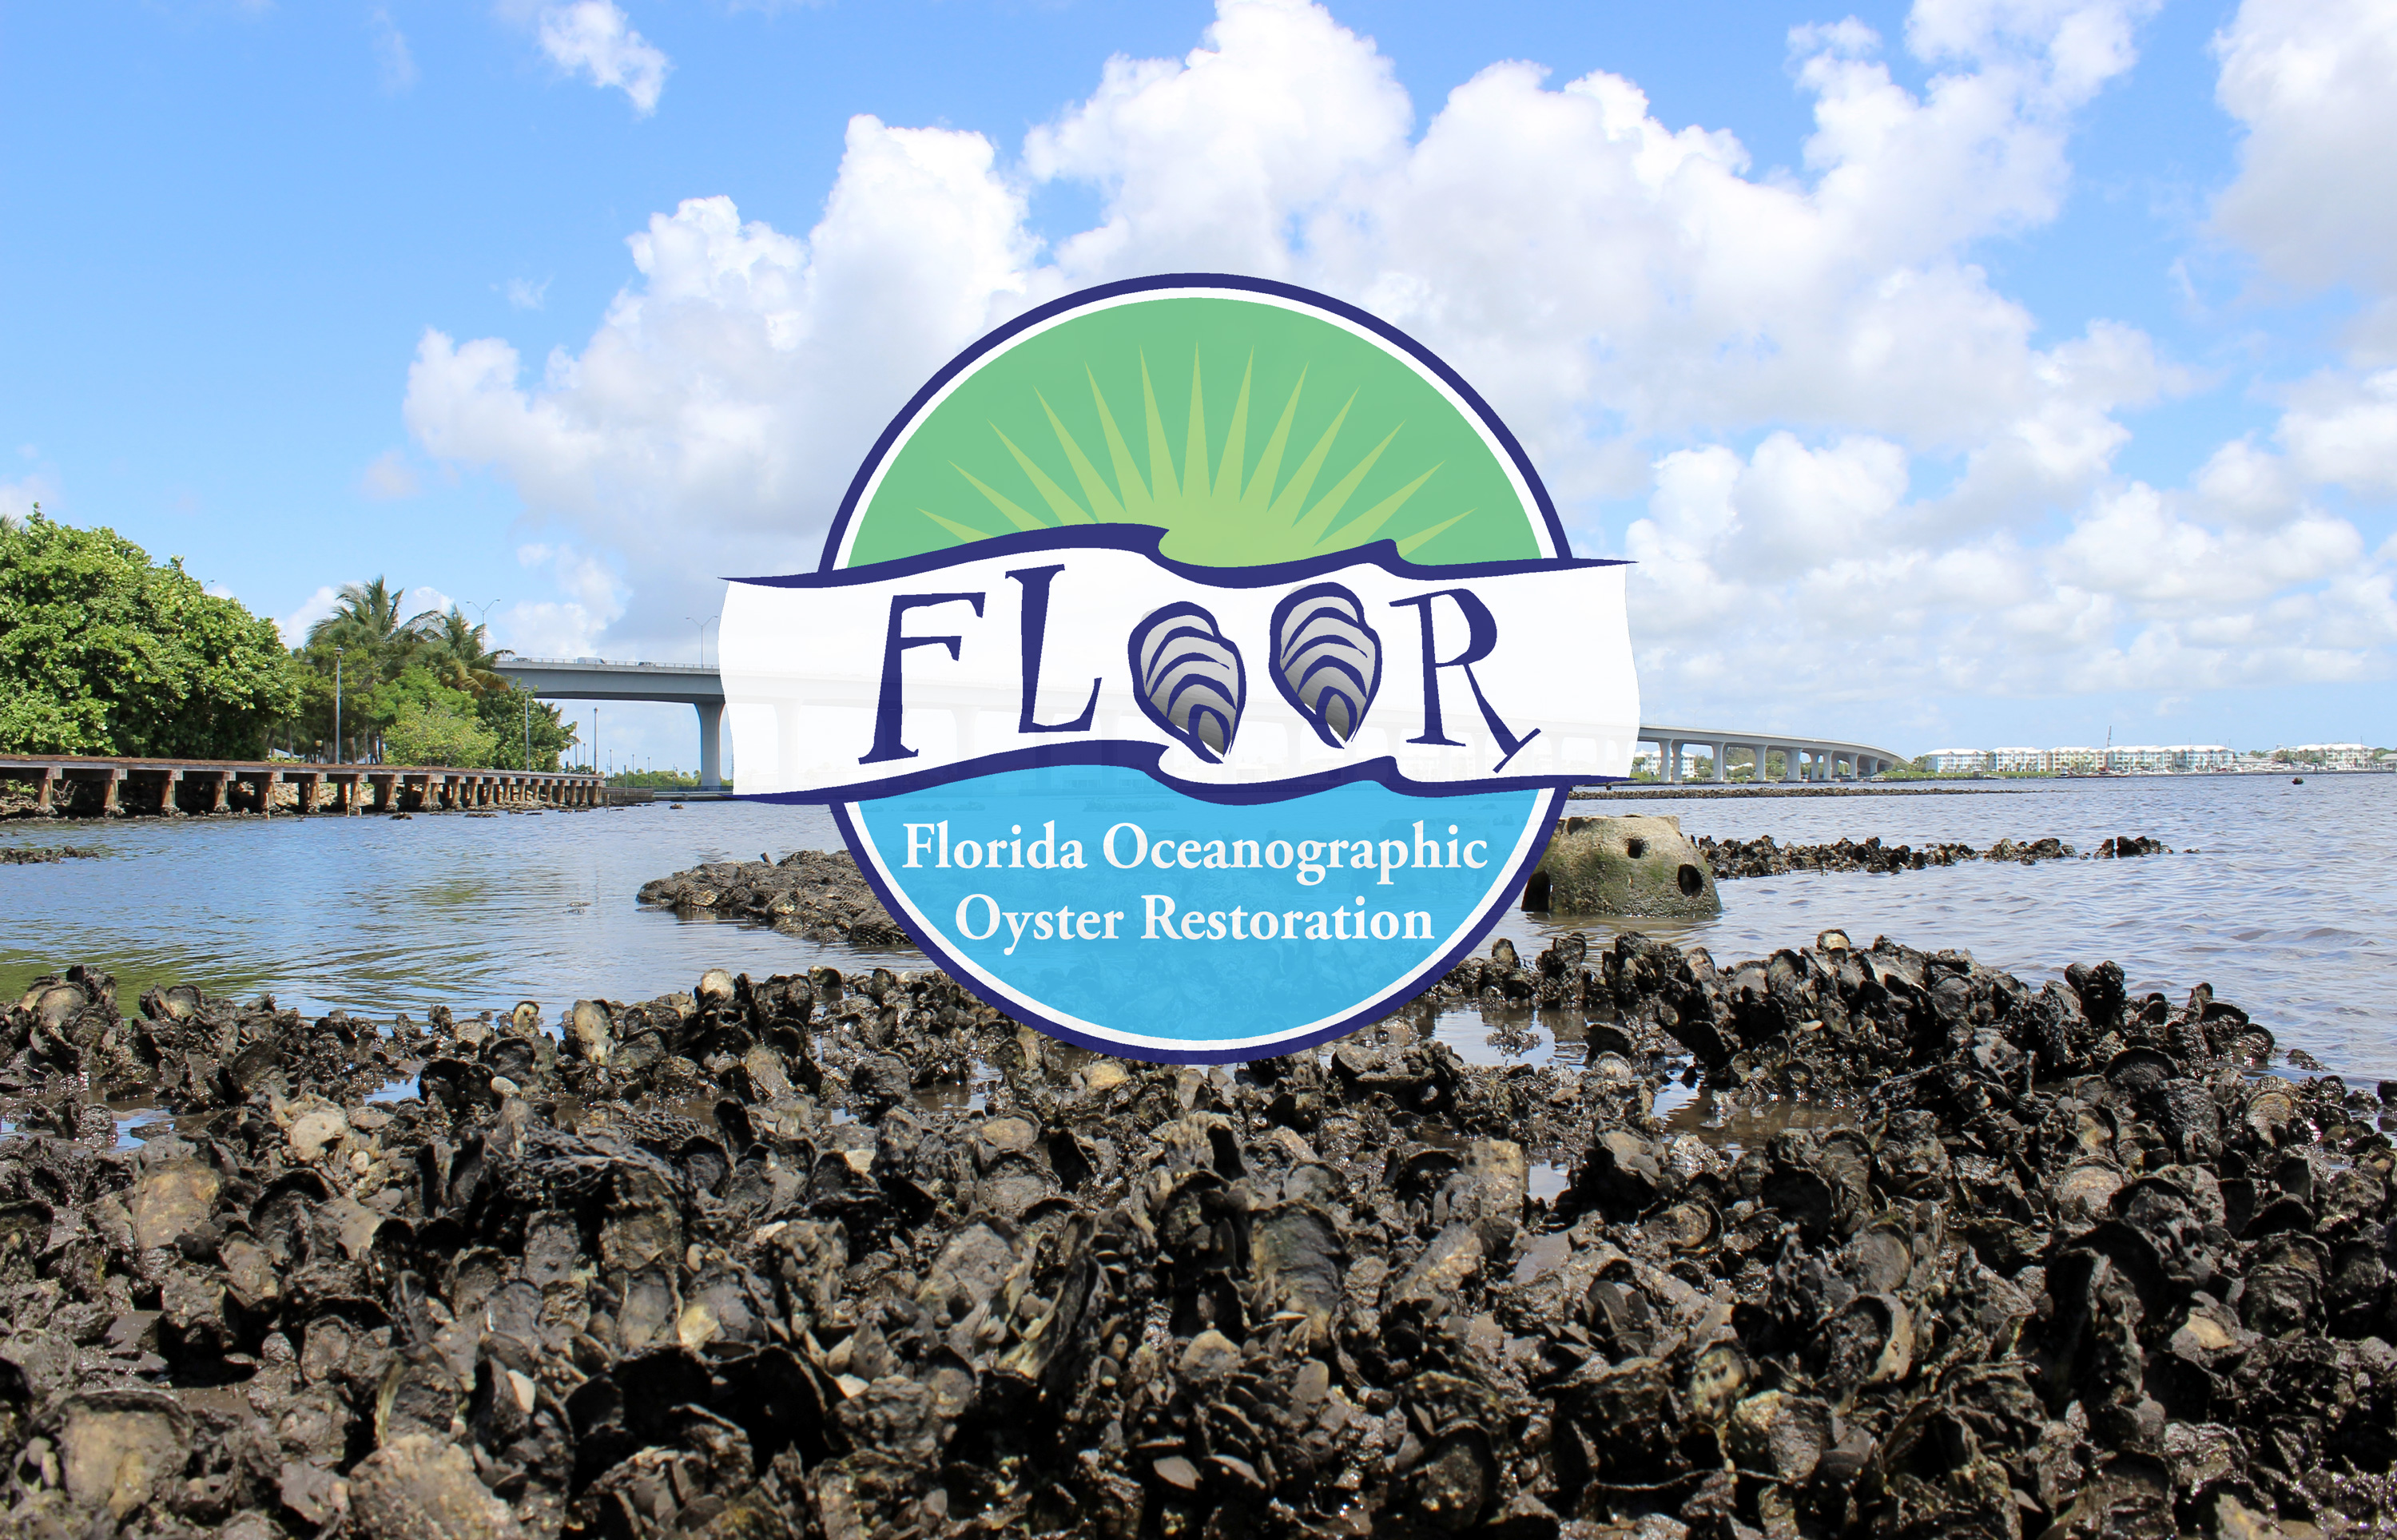 FLOOR logo placed over image of oyster bed